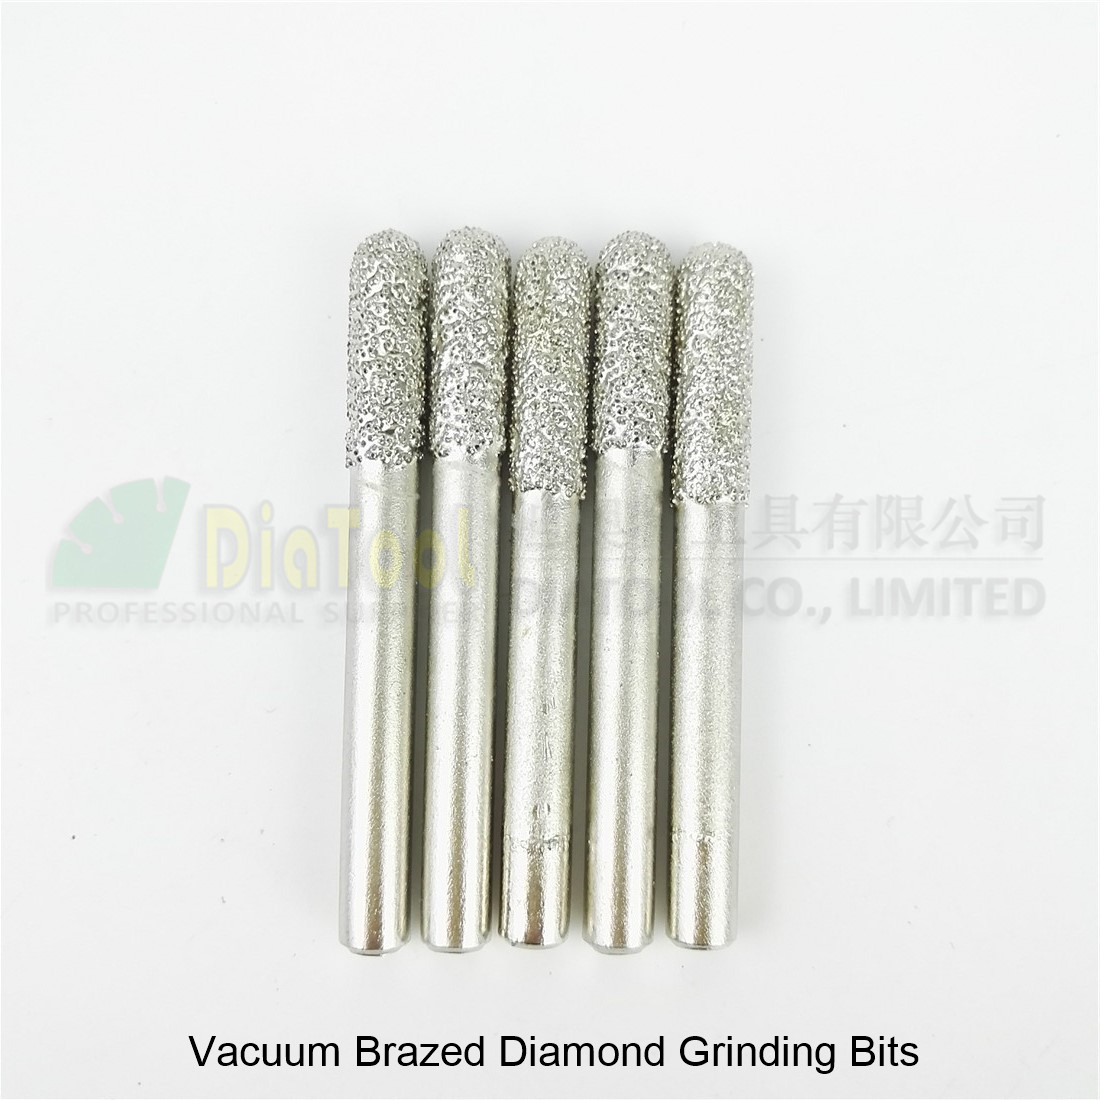 CBN grinding pin 8mm QUALITY NEW 6mm shank 100 grit